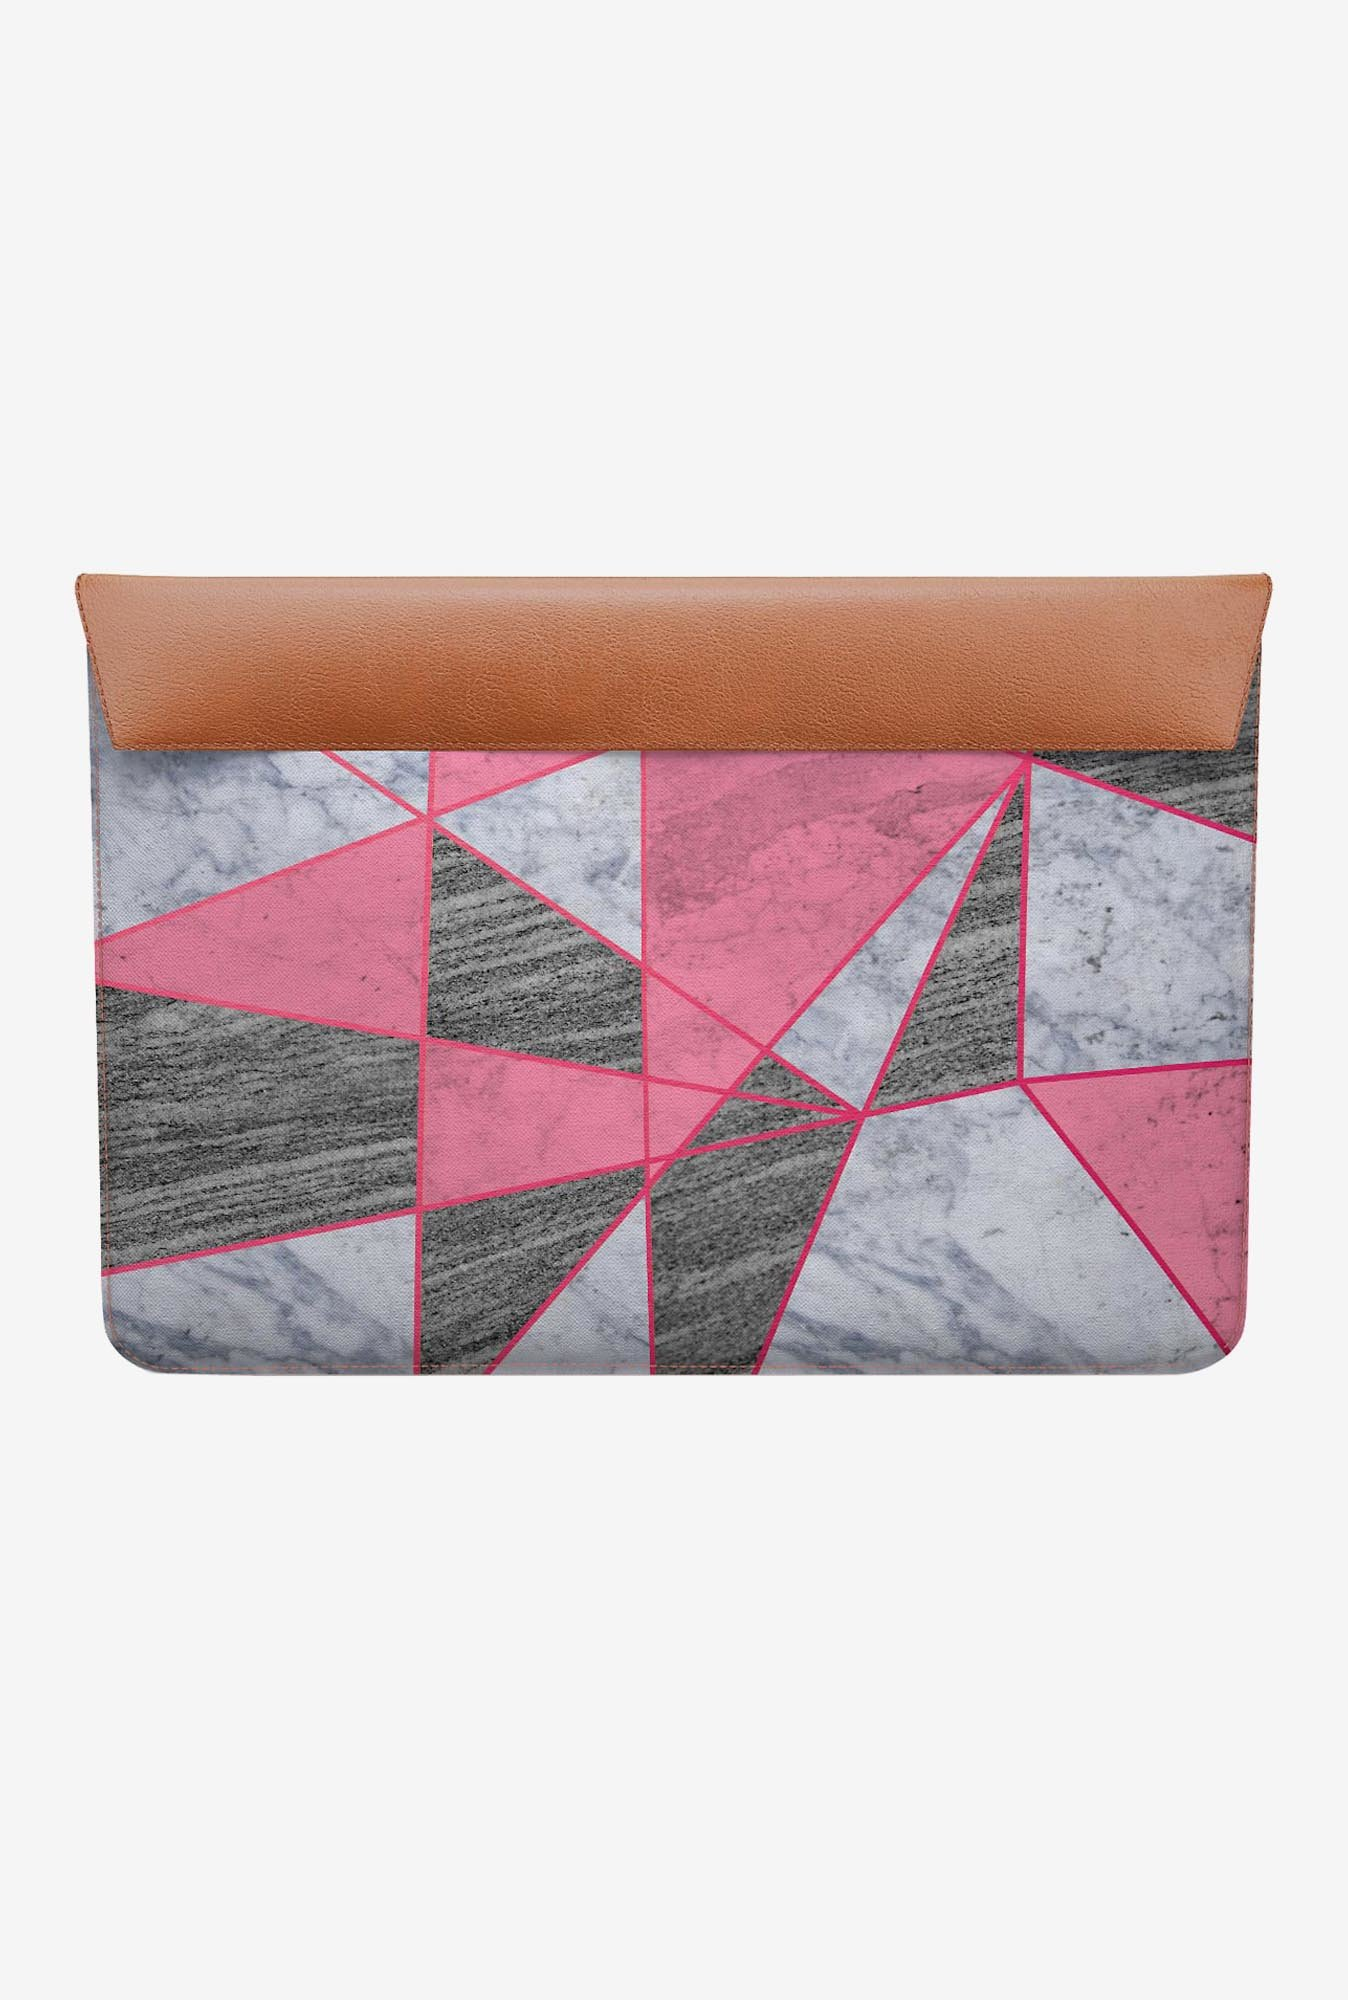 DailyObjects Marble Line Pink MacBook Pro 15 Envelope Sleeve